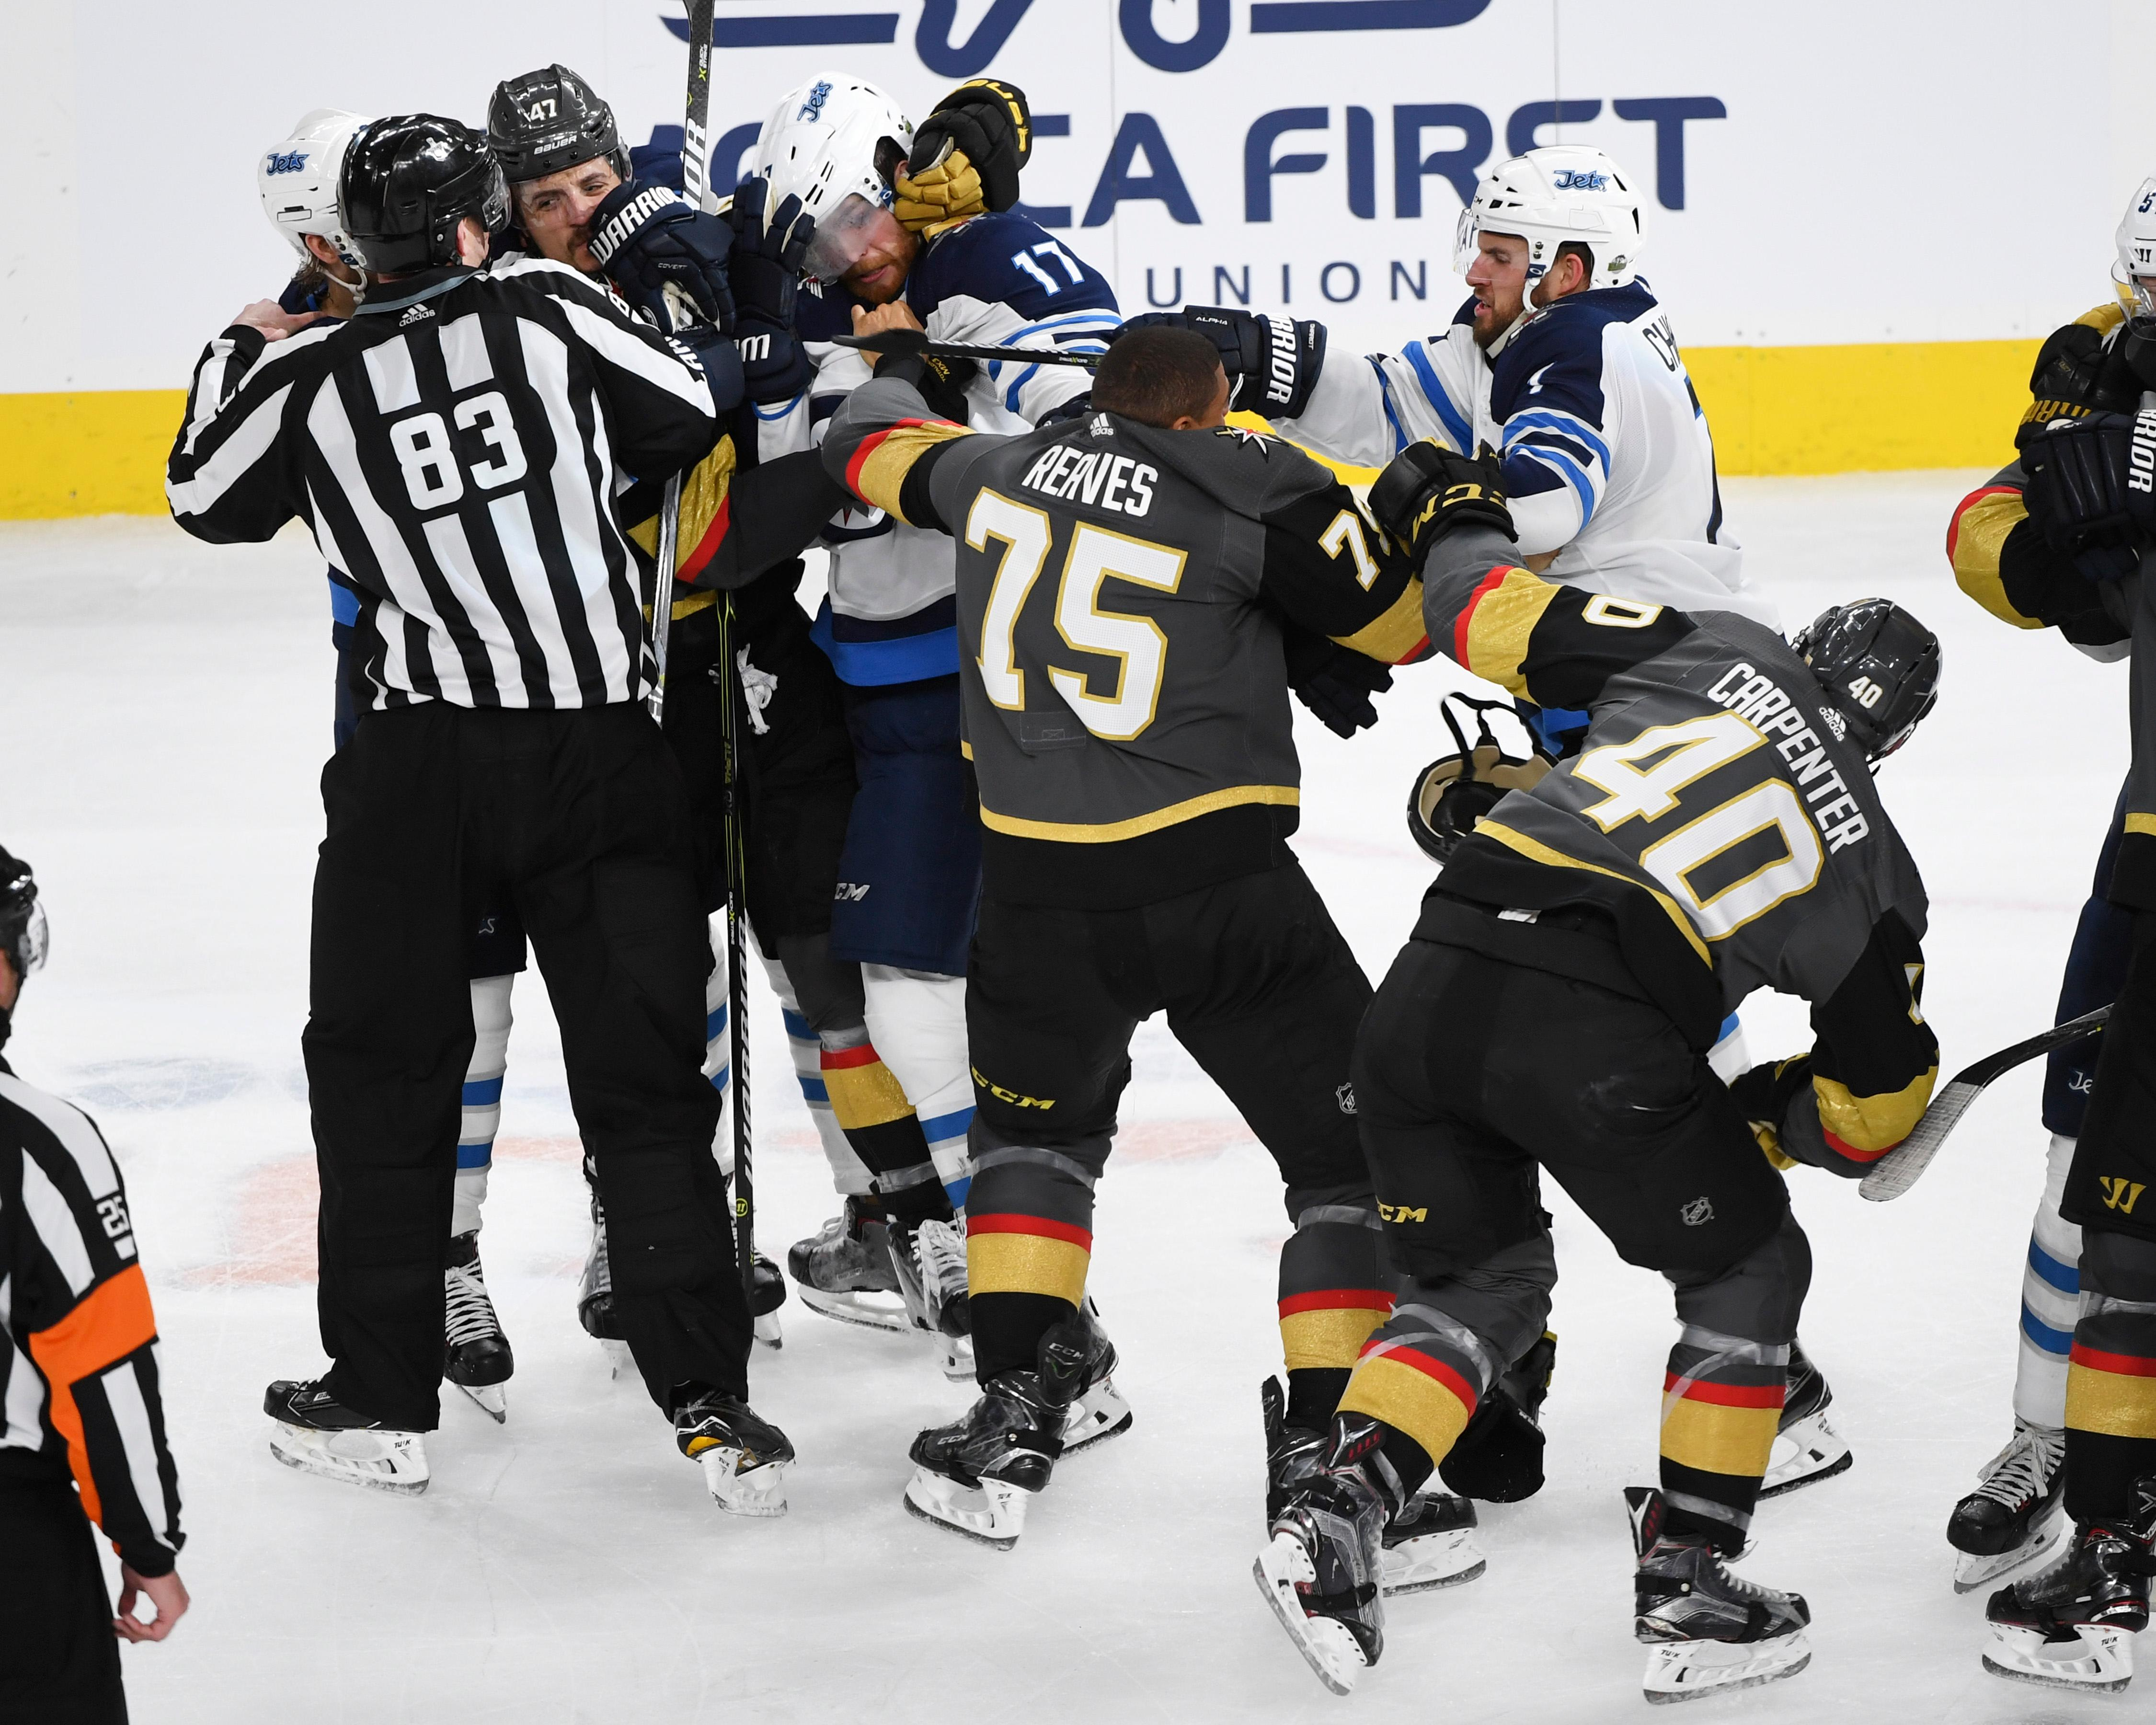 Vegas Golden Knights and Winnipeg Jets scuffle at the end of Game 3 of their NHL hockey Western Conference Final game Wednesday, May 16, 2018, at T-Mobile Arena. The Golden Knights won 4-2 to take a 2-1 lead in the series. CREDIT: Sam Morris/Las Vegas News Bureau